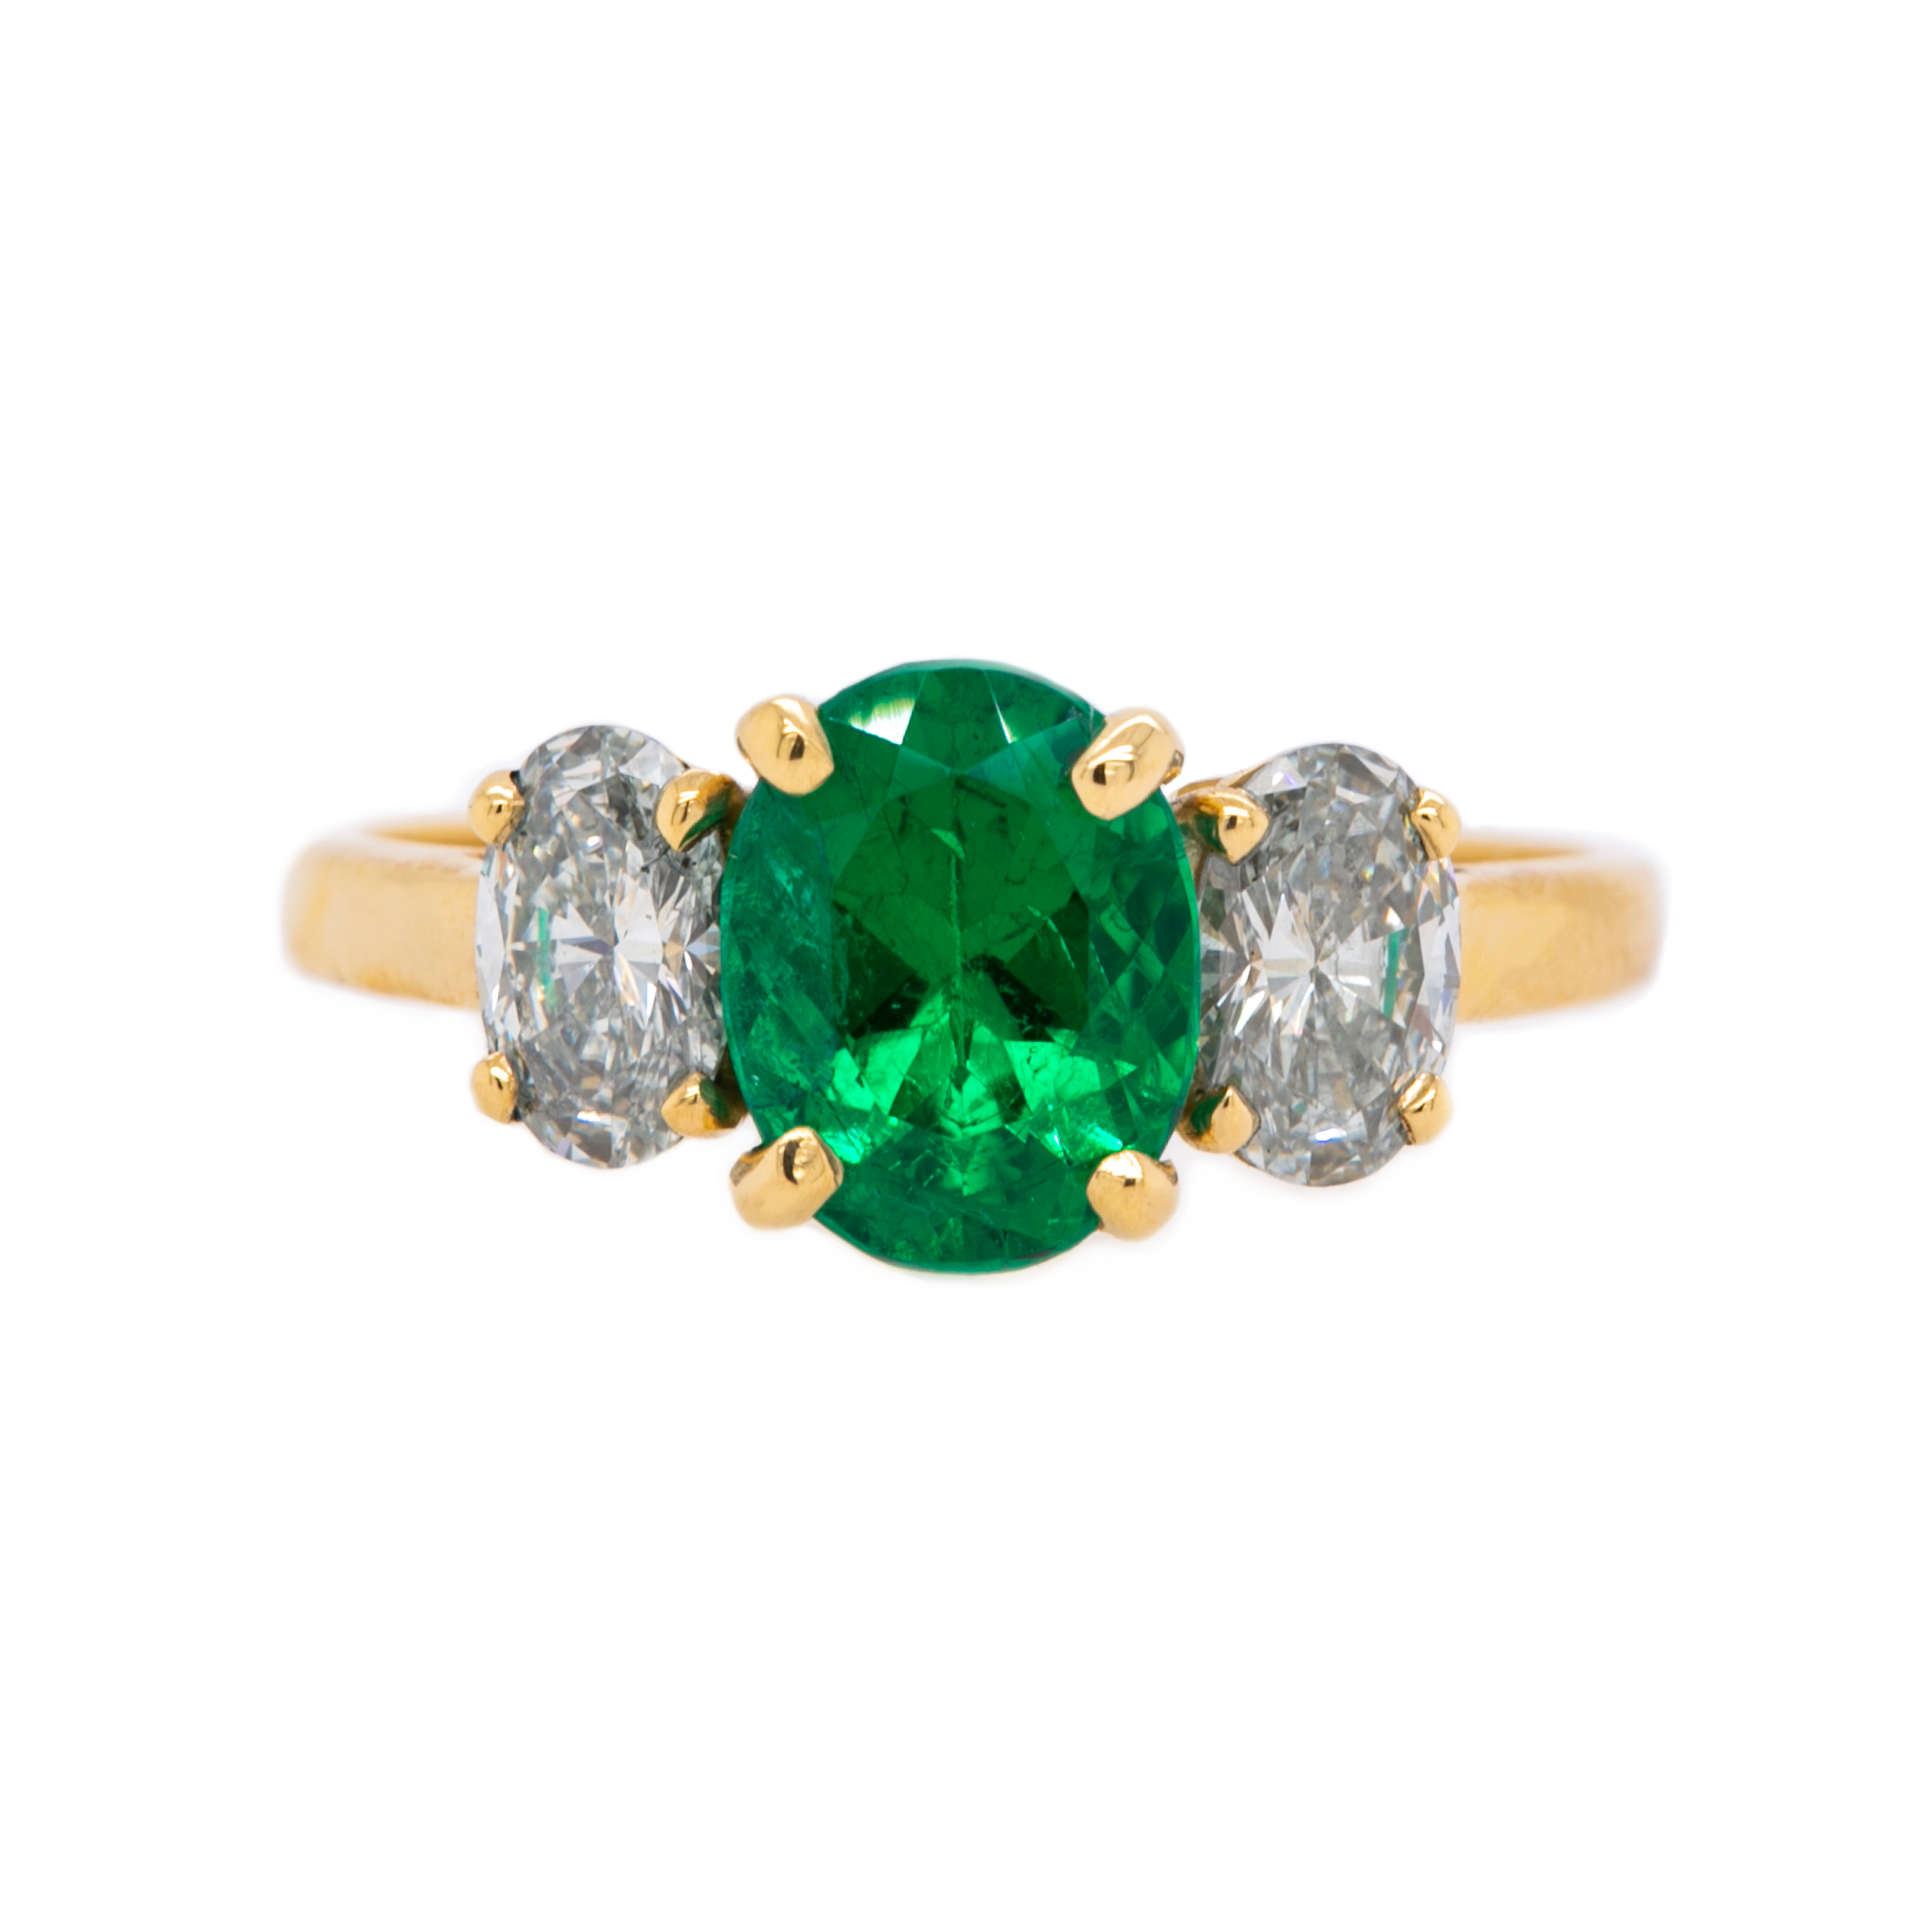 Stunning Modern Era Yellow Gold, Diamond and Emerald Three Stone Engagement Ring | Baytowne